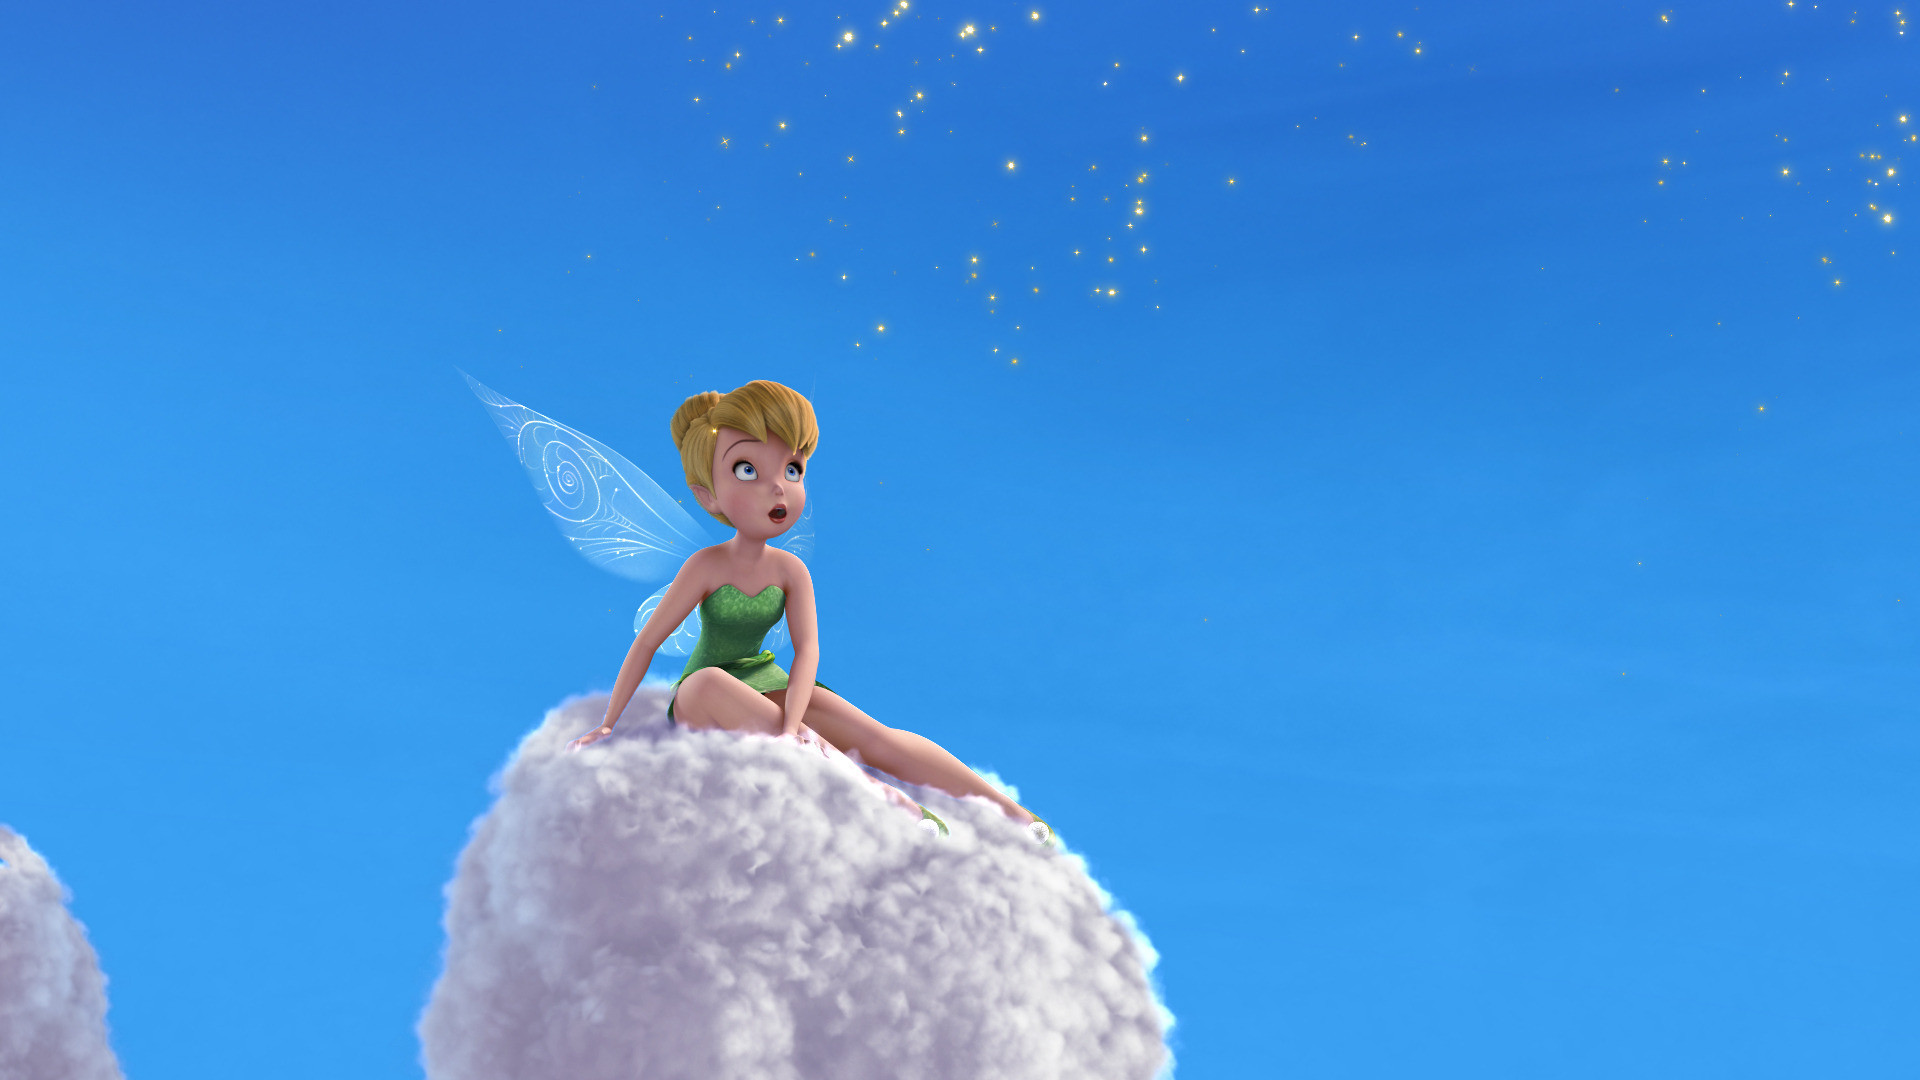 Tinkerbell Fall Wallpaper Desktop Tinkerbell Hd Wallpapers Pixelstalk Net